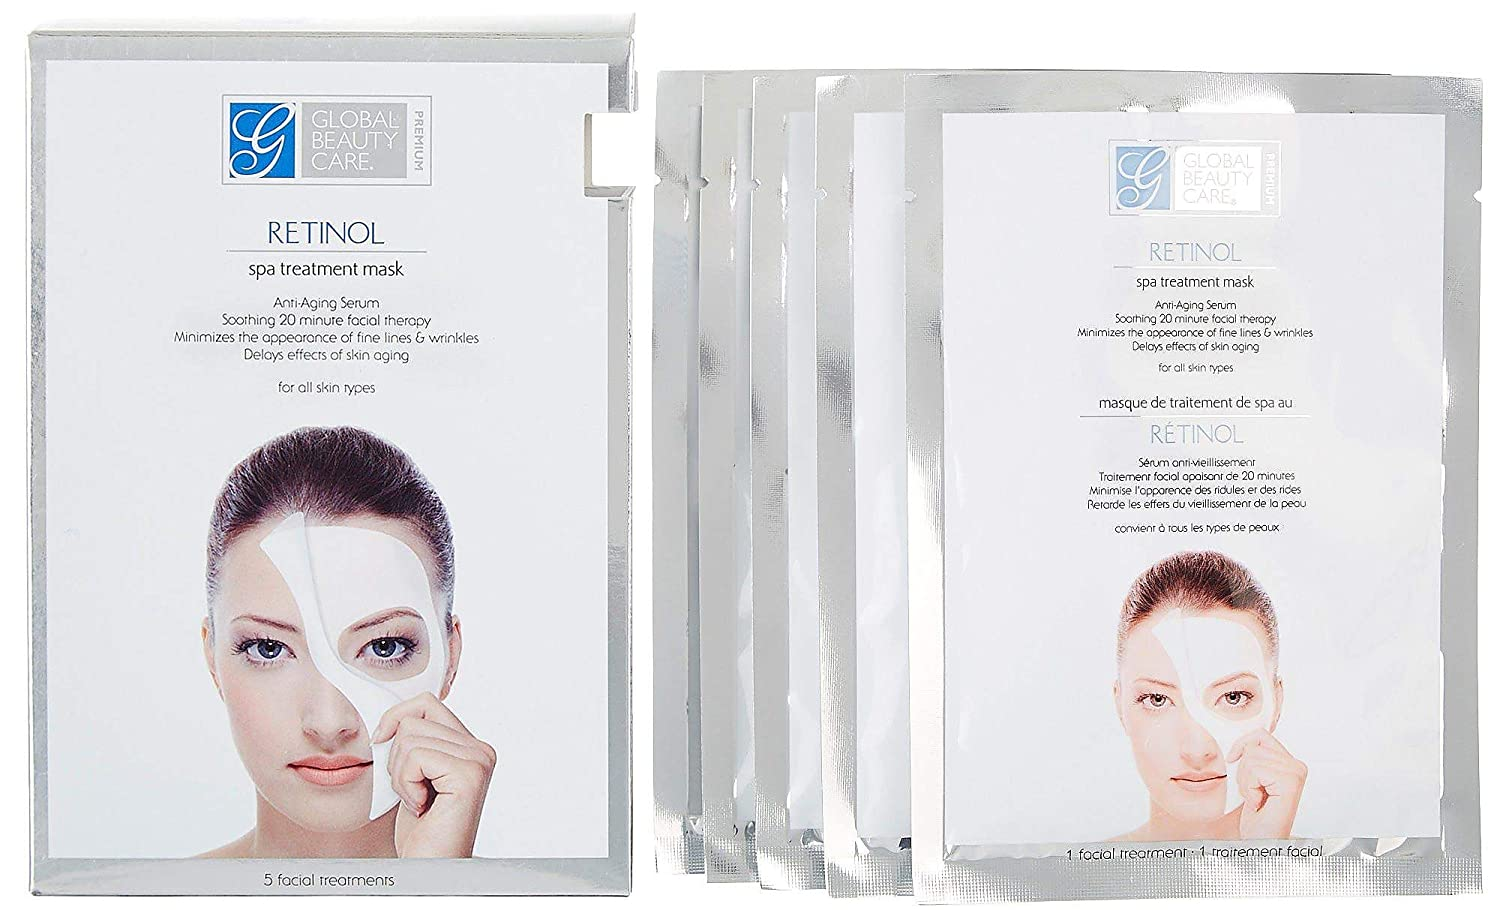 Global Beauty Care Retinol Spa Anti-Aging Treatment Mask Pack of 5